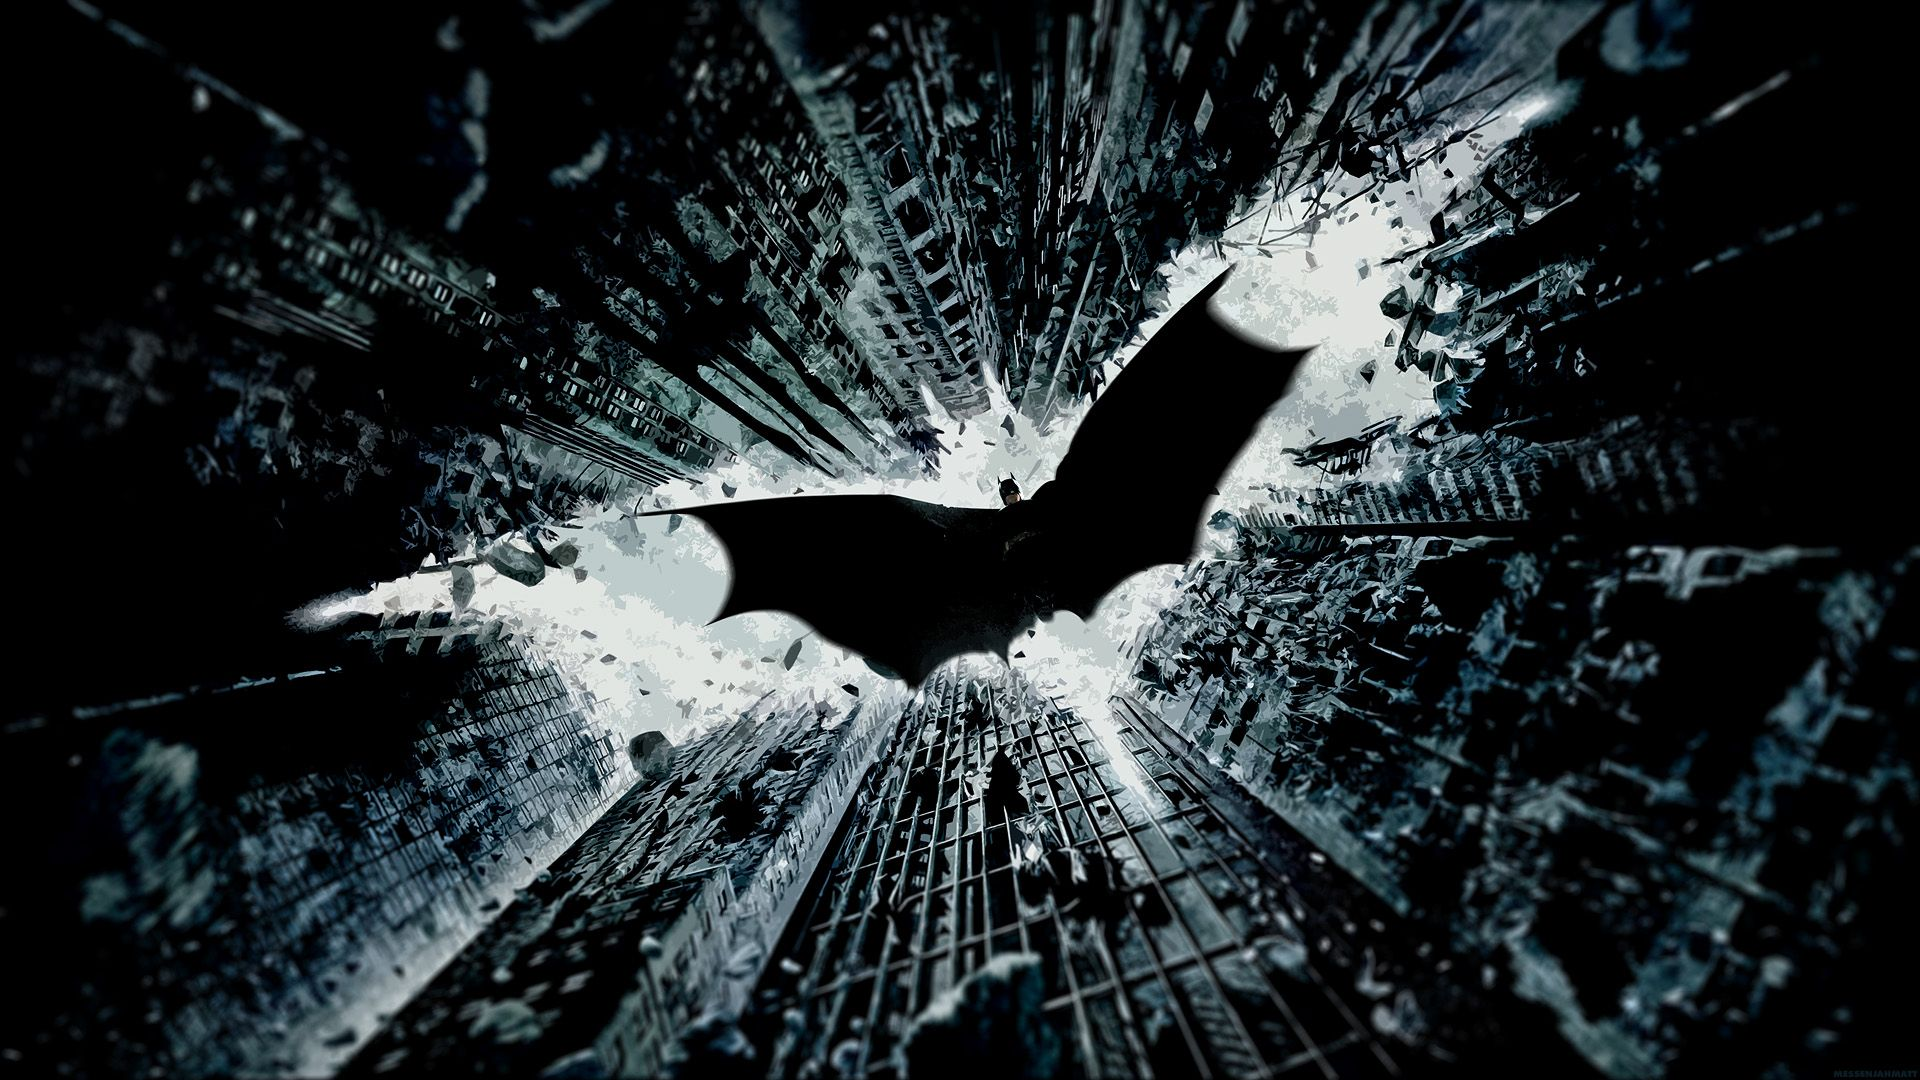 Batman Logo Dark Knight Rises Wallpaper Free Hd Batman Wallpaper